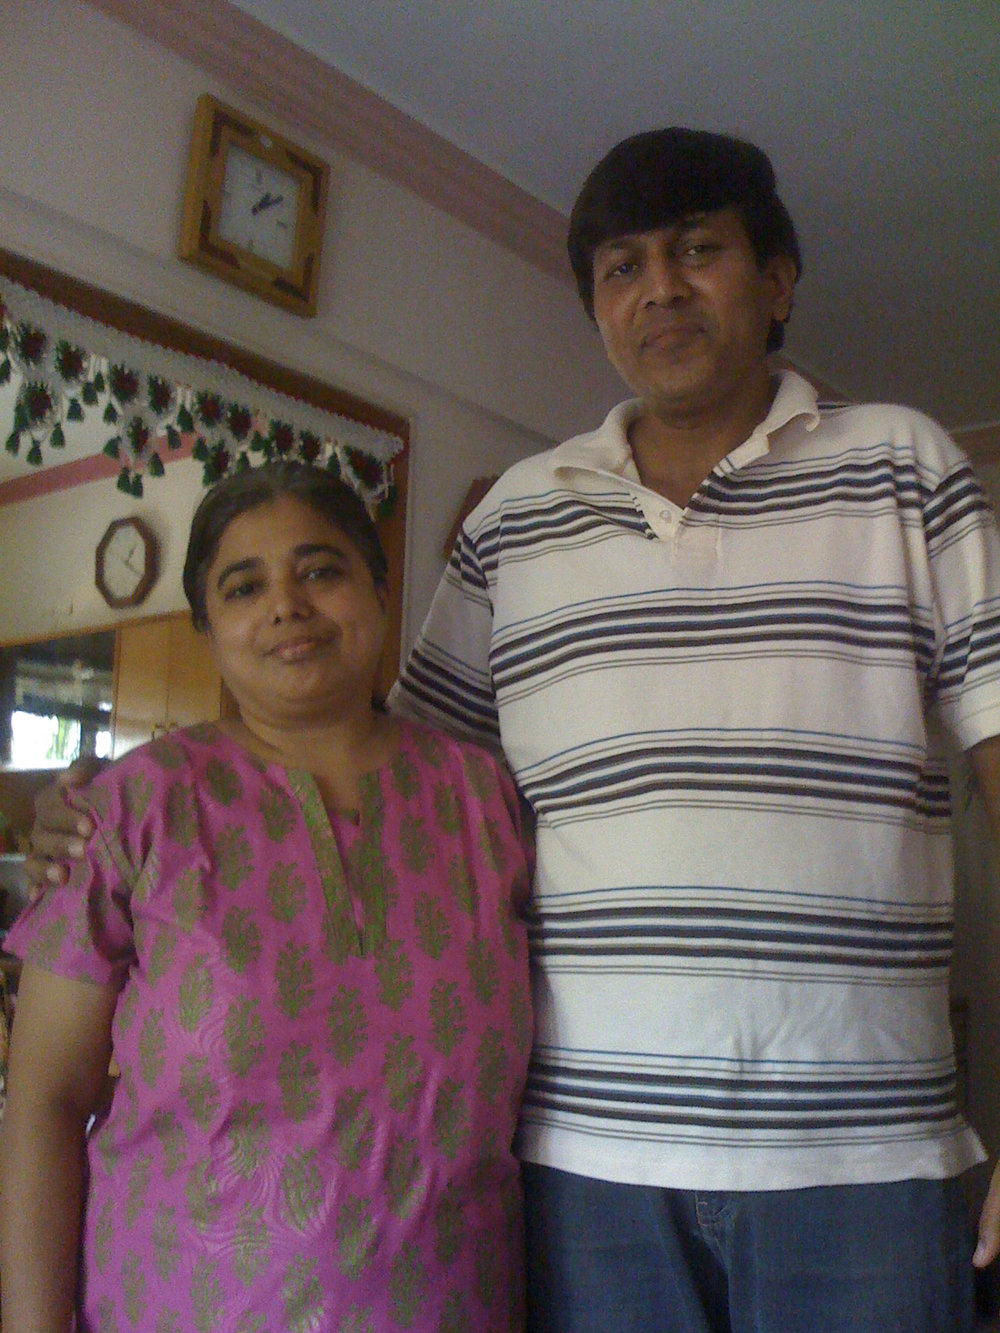 My wonderful hosts, Rajeshree and her husband, Rajeshree in 2009.